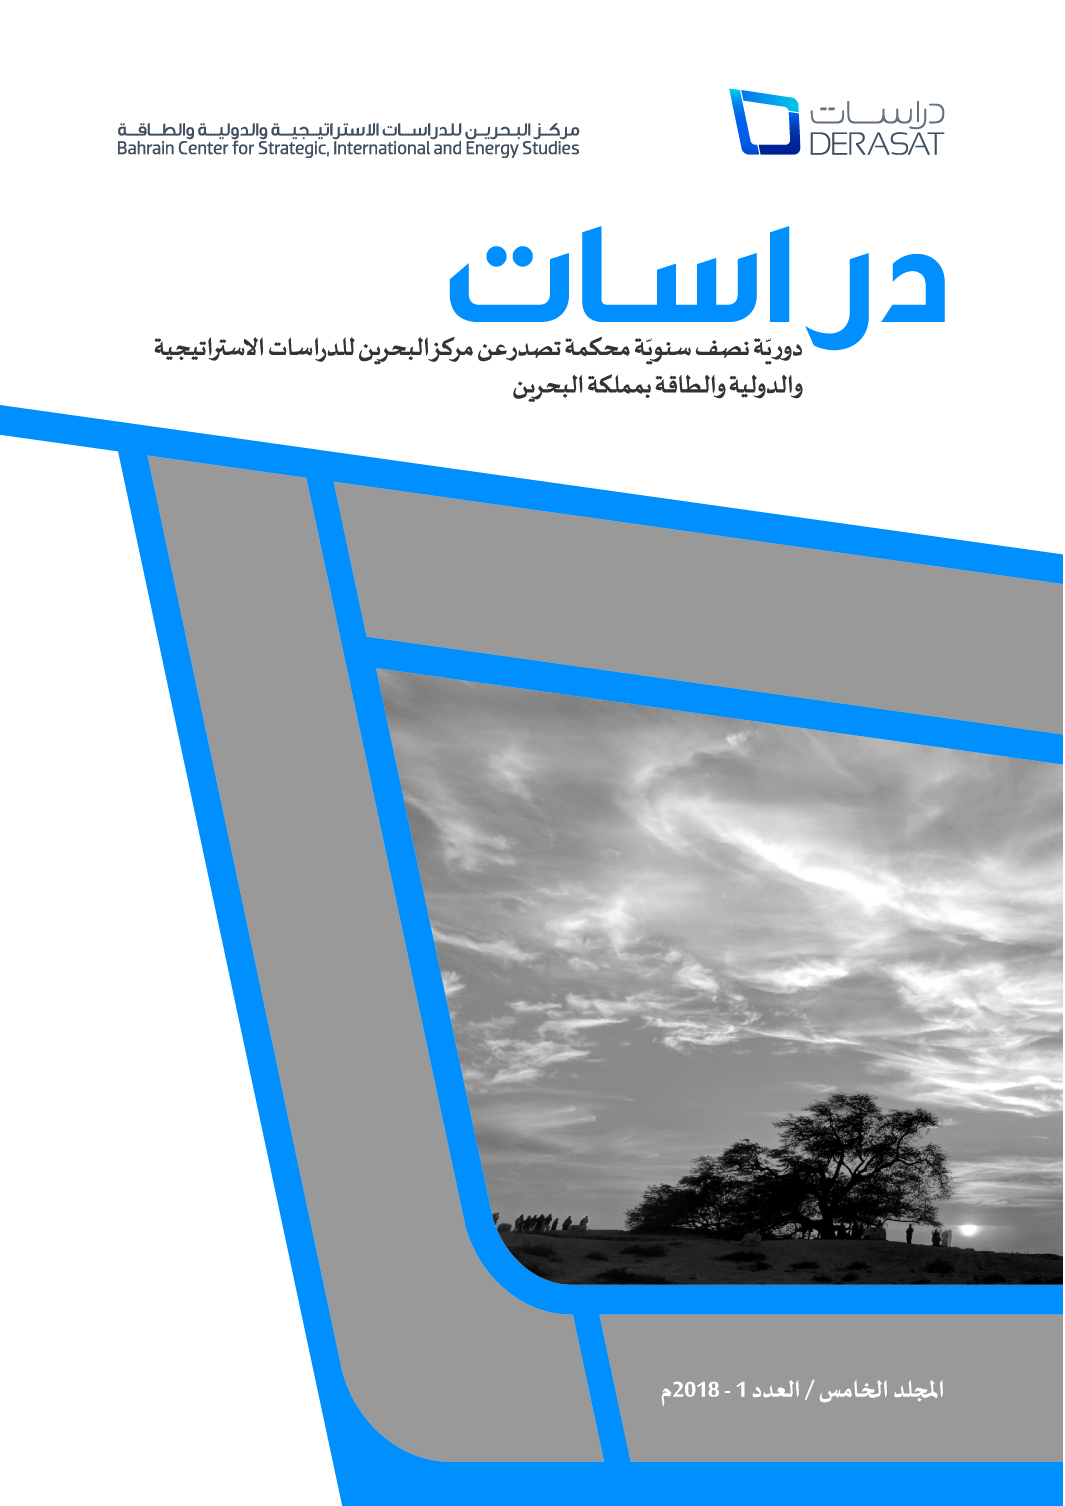 Derasat Journal 2018 - Issue 1